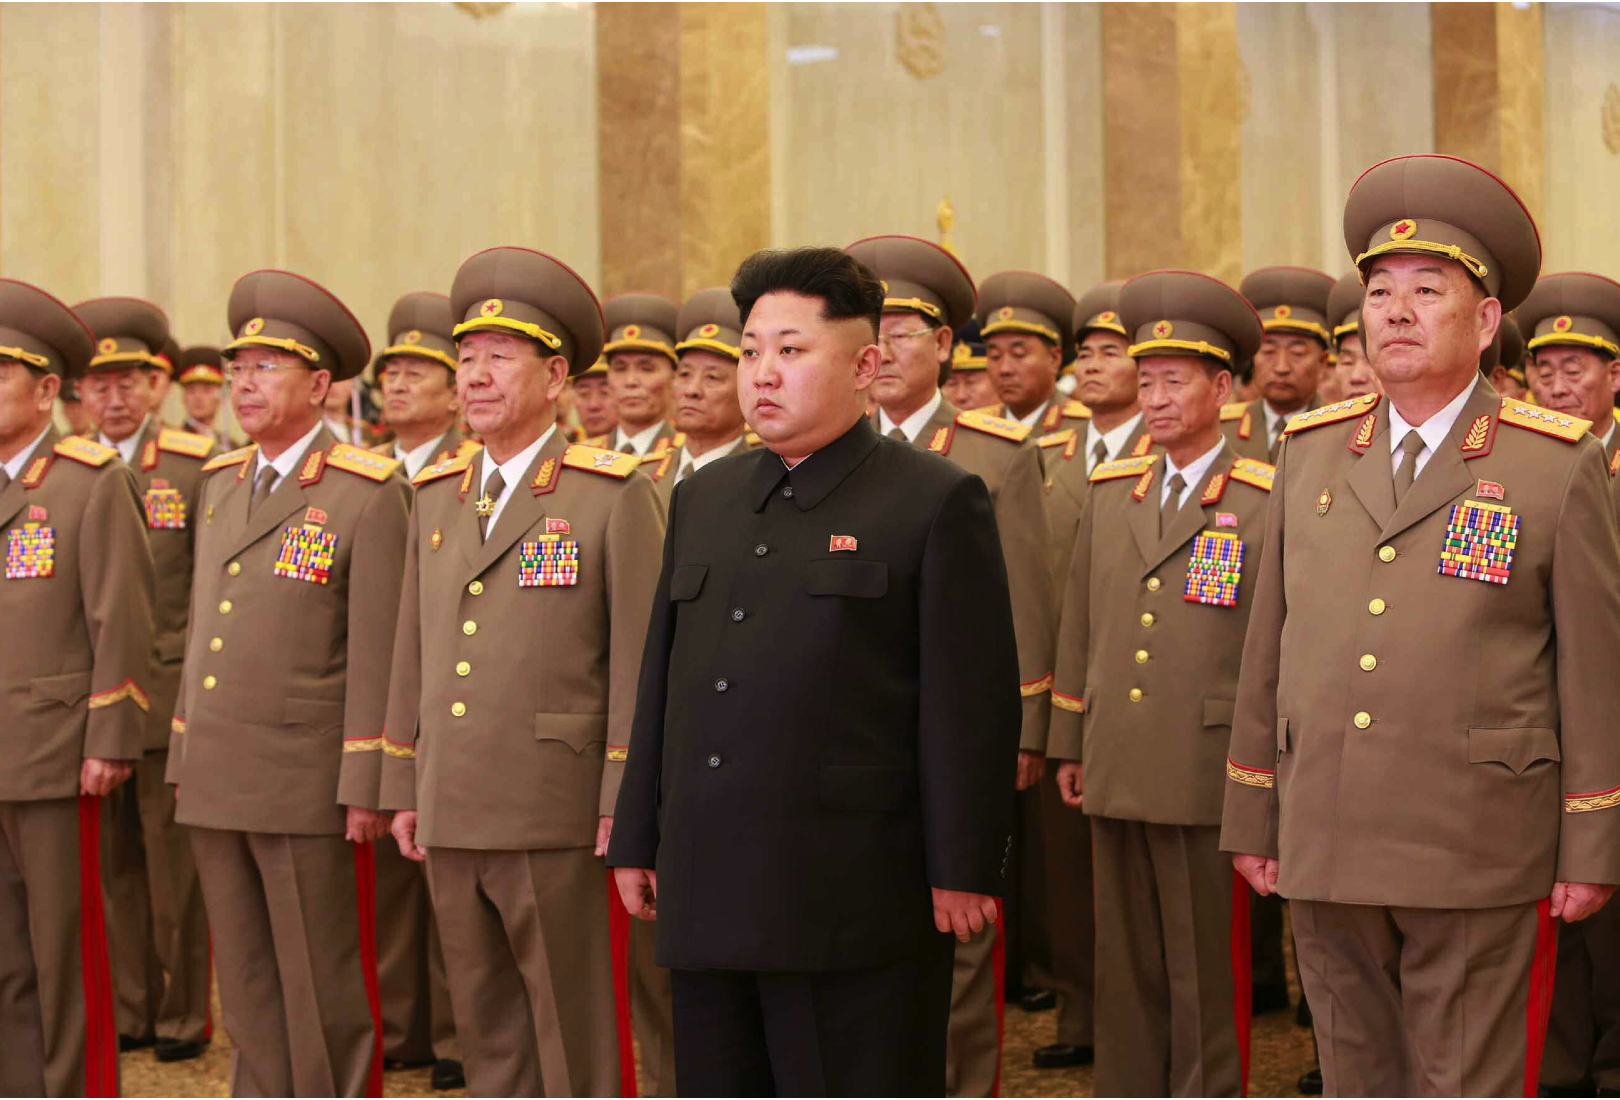 Kim Jong Un visits the Ku'msusan Palace of the Sun in Pyongyang on February 16, 2015.  Also in attendance (L-R) are Gen. Ri Yong Gil (Chief of the KPA General Staff), VMar Hwang Pyong So (Director of the KPA General Political Department) and Gen. Hyon Yong Chol (Minister of the People's Armed Forces).